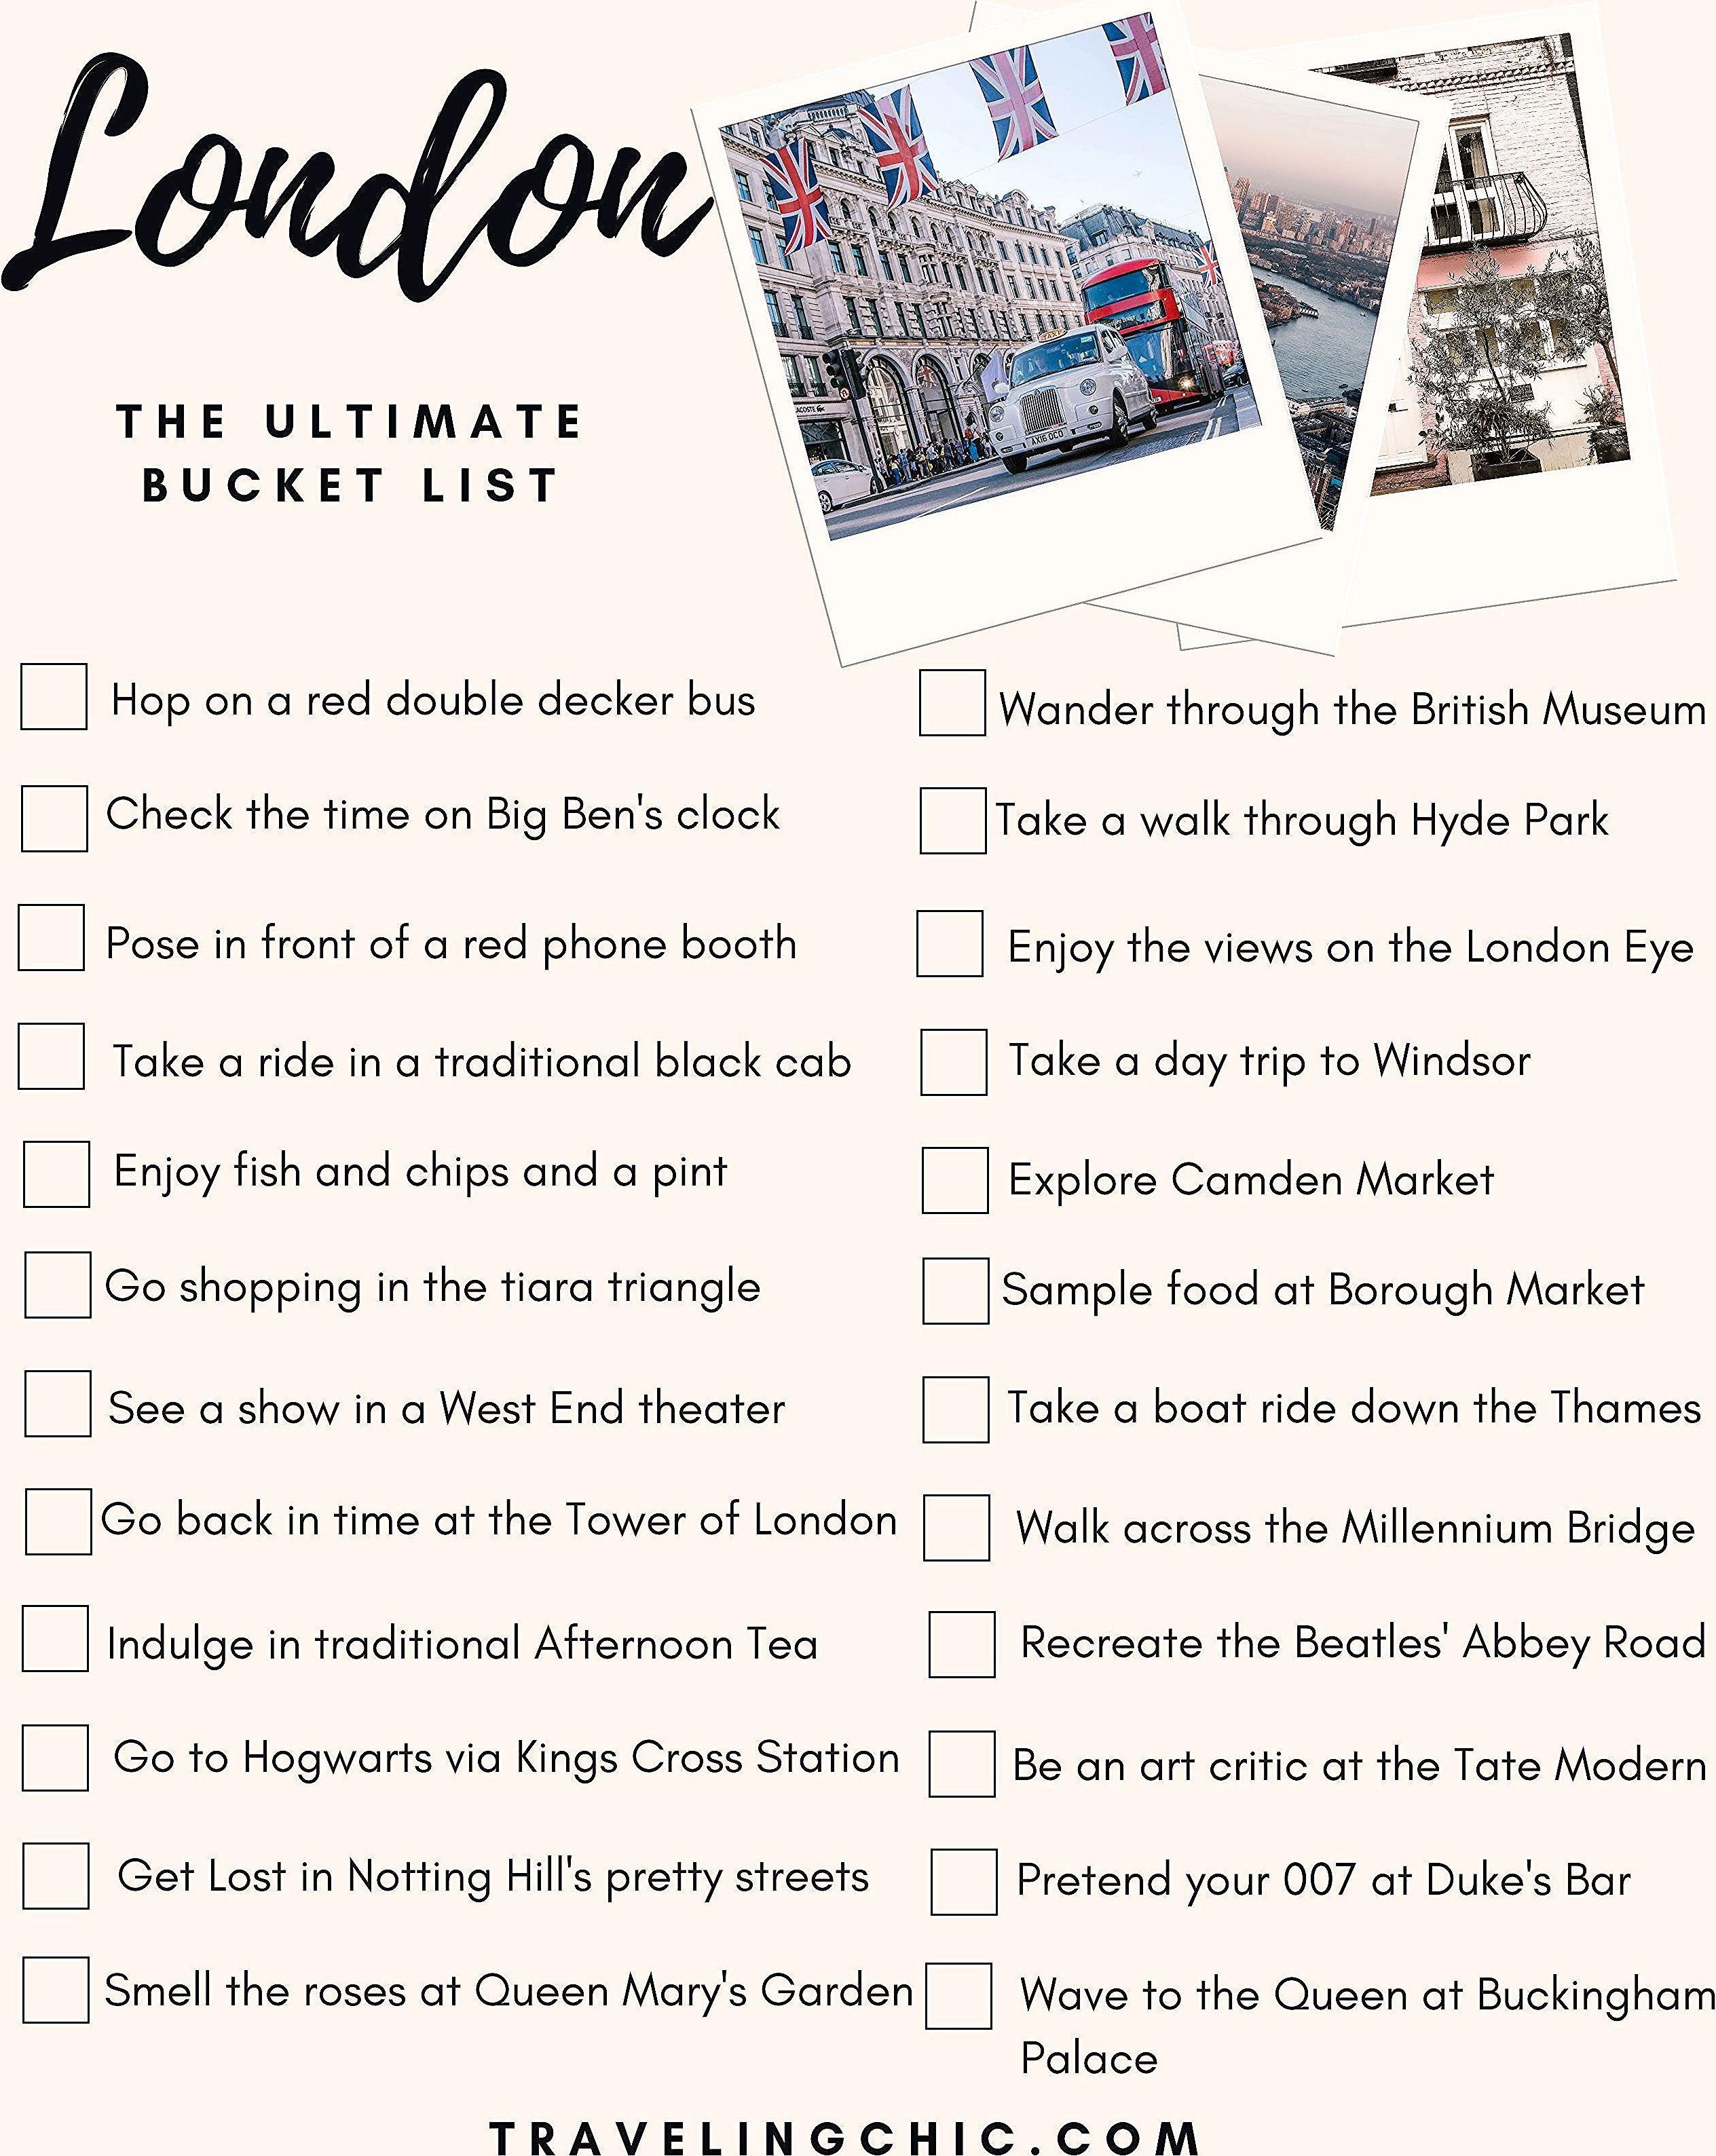 London Bucket List of things to do and sights to see. A London travel guide and perfect itinerary for everything to eat, see, do in England. Travel tips, insights, and must see activities for your trip or vacation to London! #london #londonengland #england #travel #guide